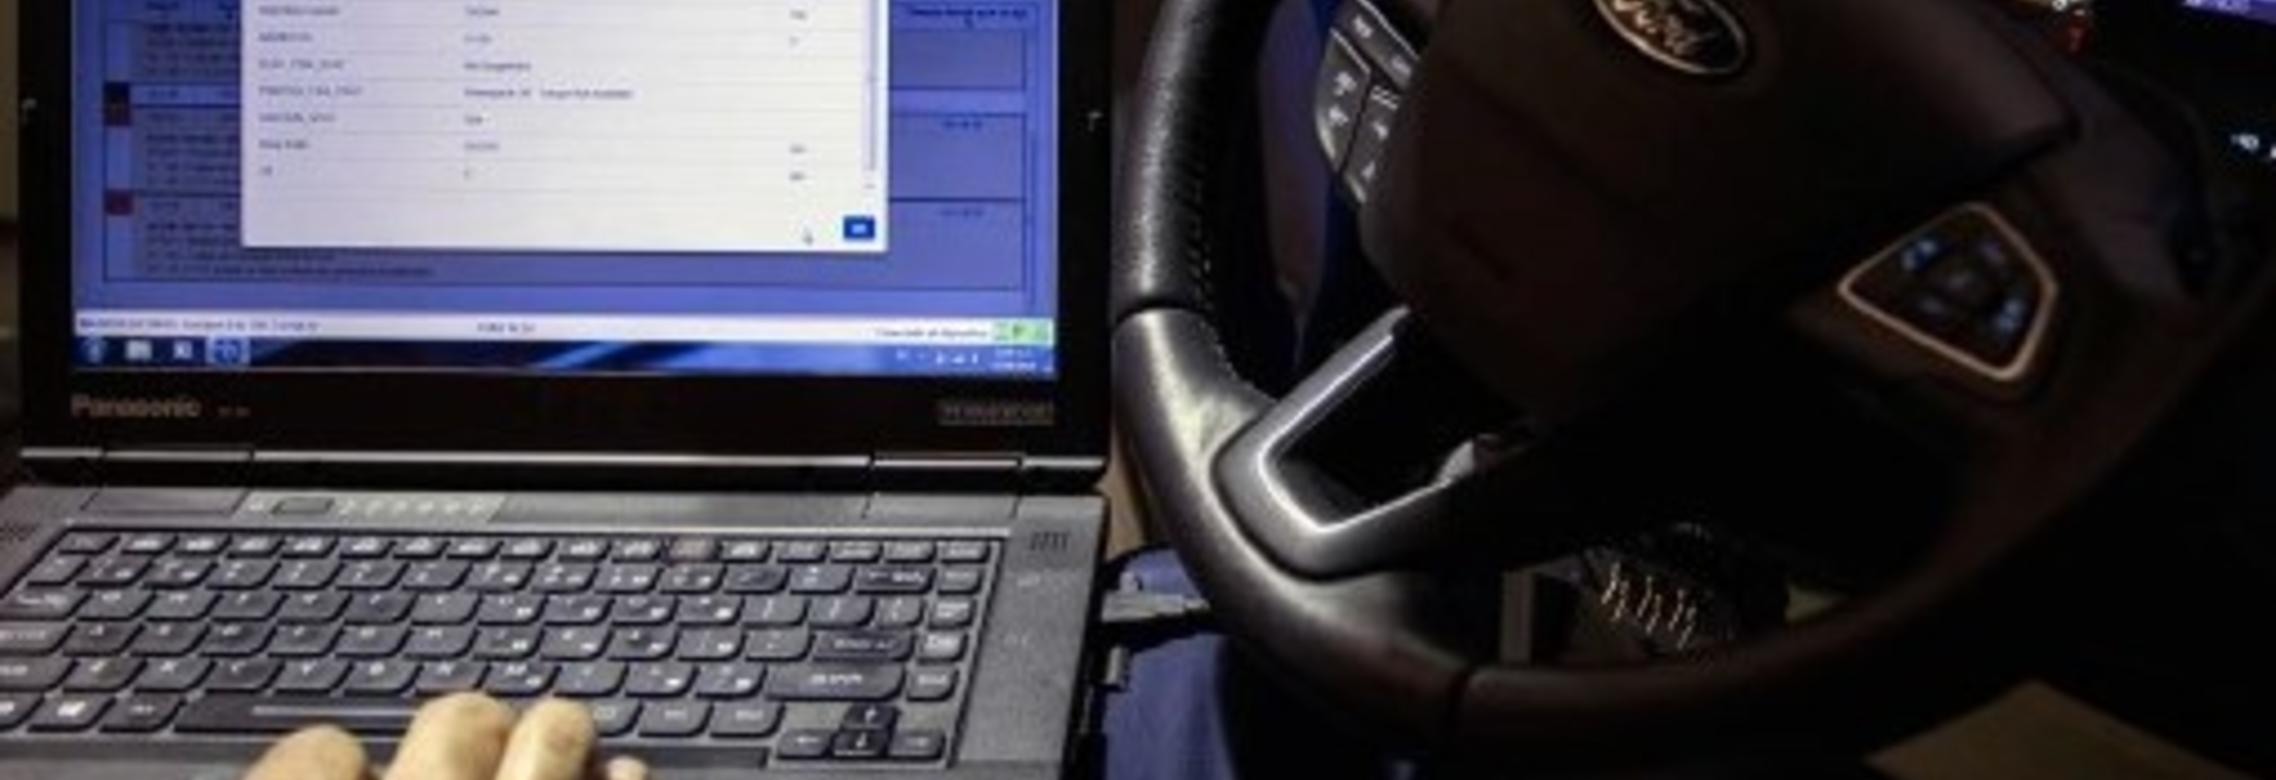 Caso Toughbook en Ford Mexico thumb